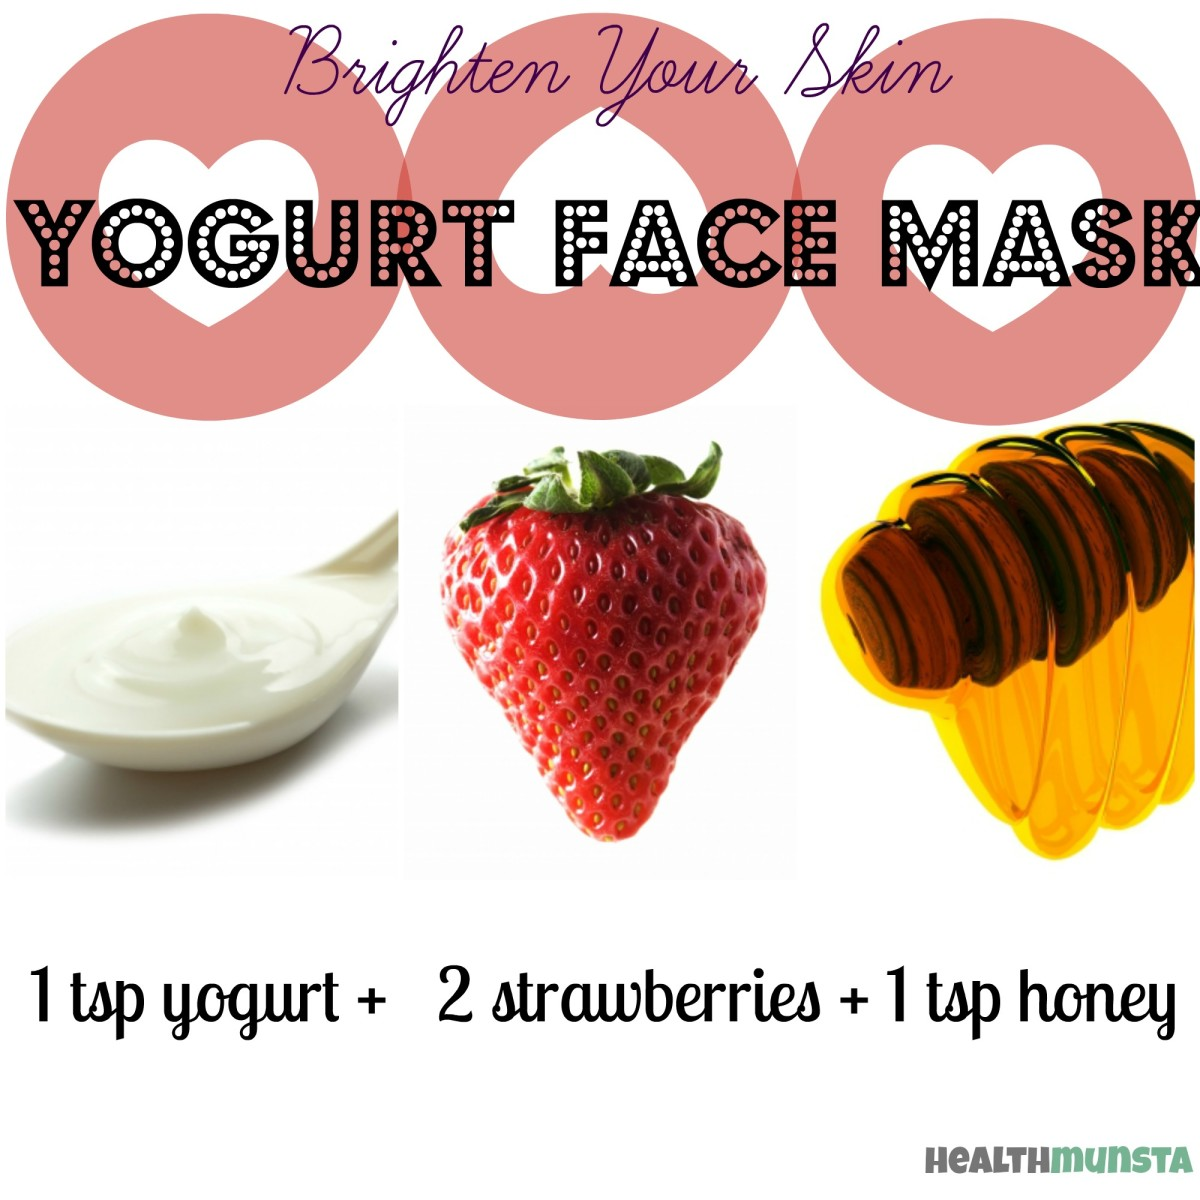 No one likes dull skin. Make your skin brighter right at home with this skin-brightening face mask!